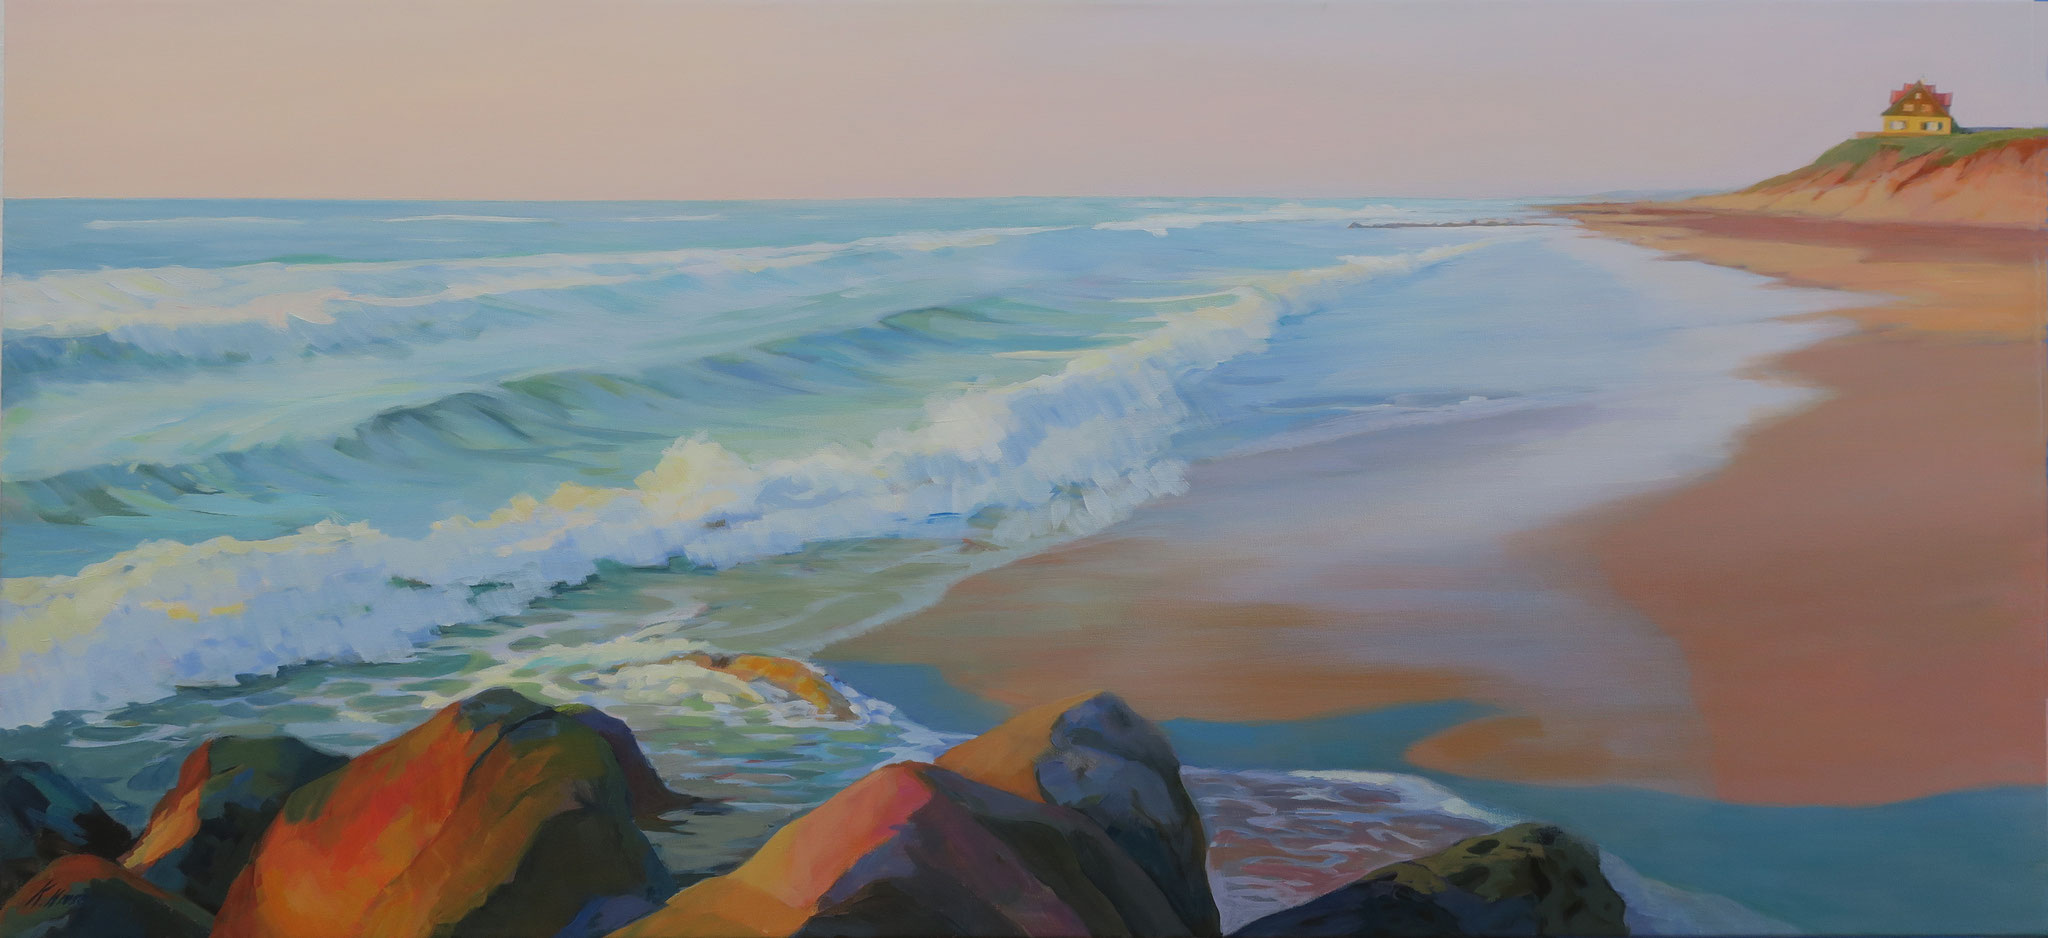 Skagen, 130 x 60 cm. Acrylic on canvas